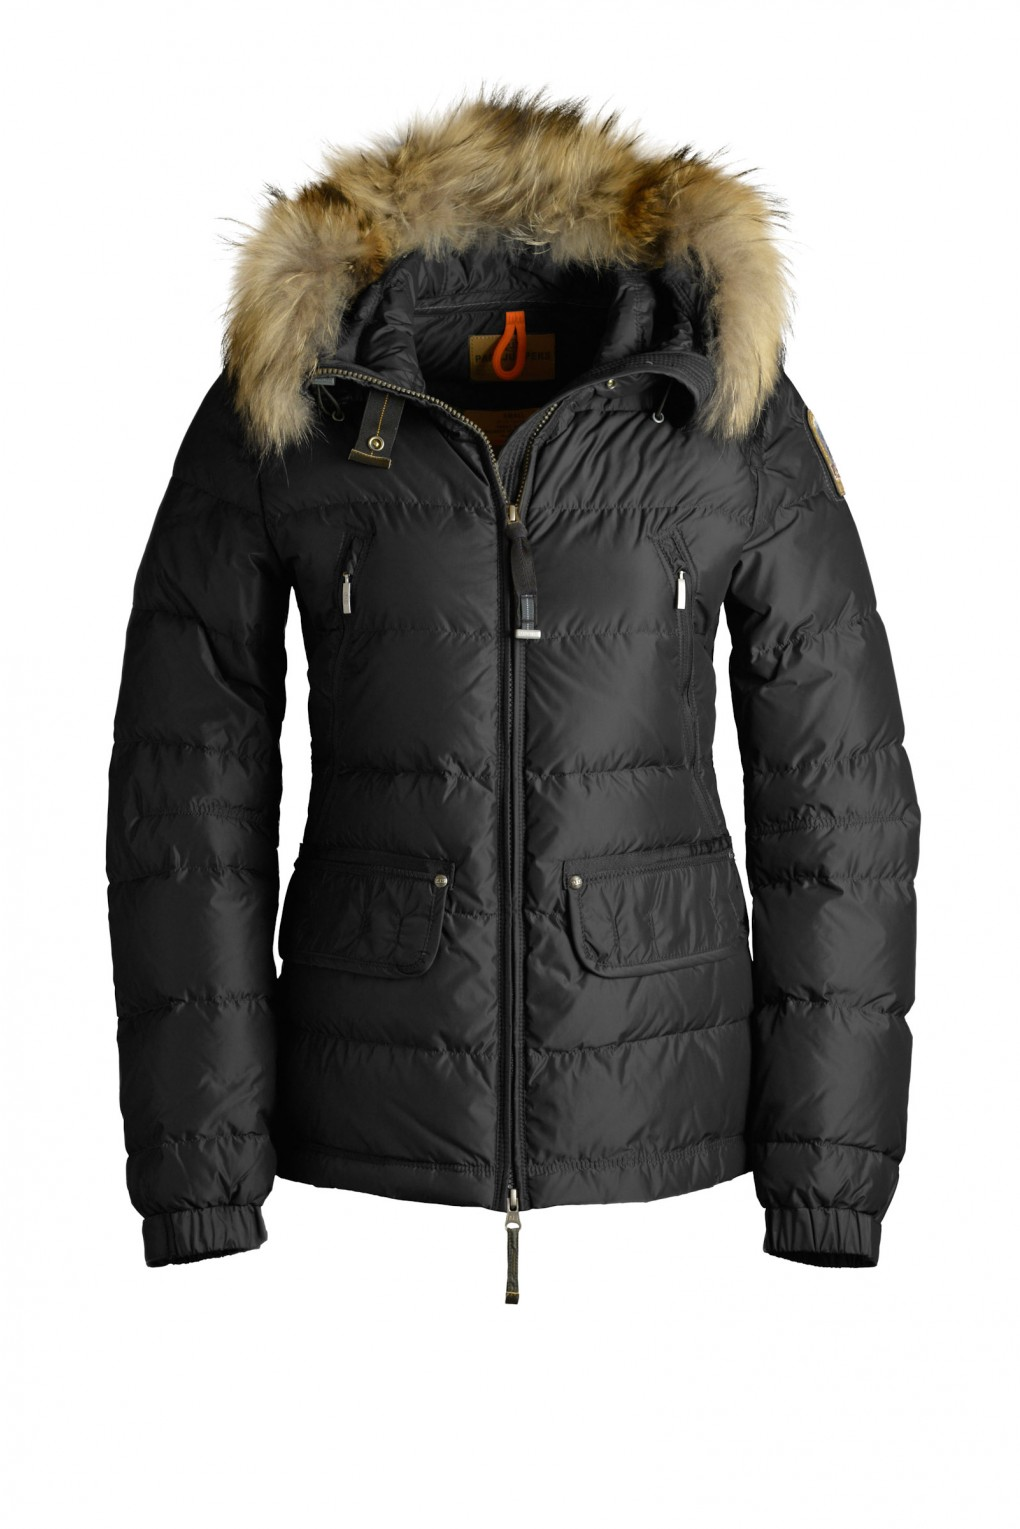 parajumpers ALASKA woman outerwear Black